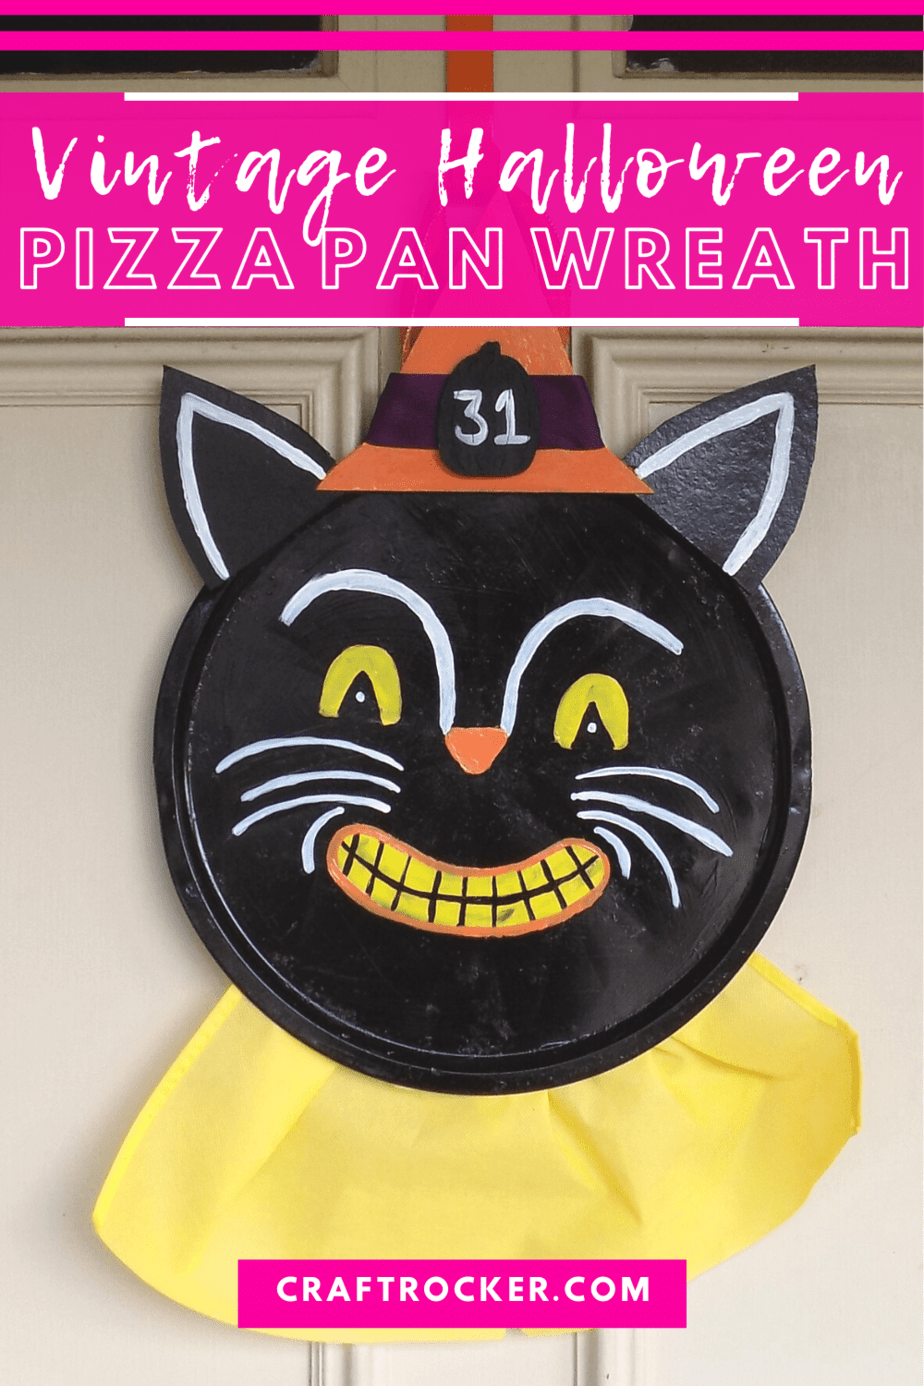 Vintage Cat Wreath on Door with text overlay - Vintage Halloween Pizza Pan Wreath - Craft Rocker